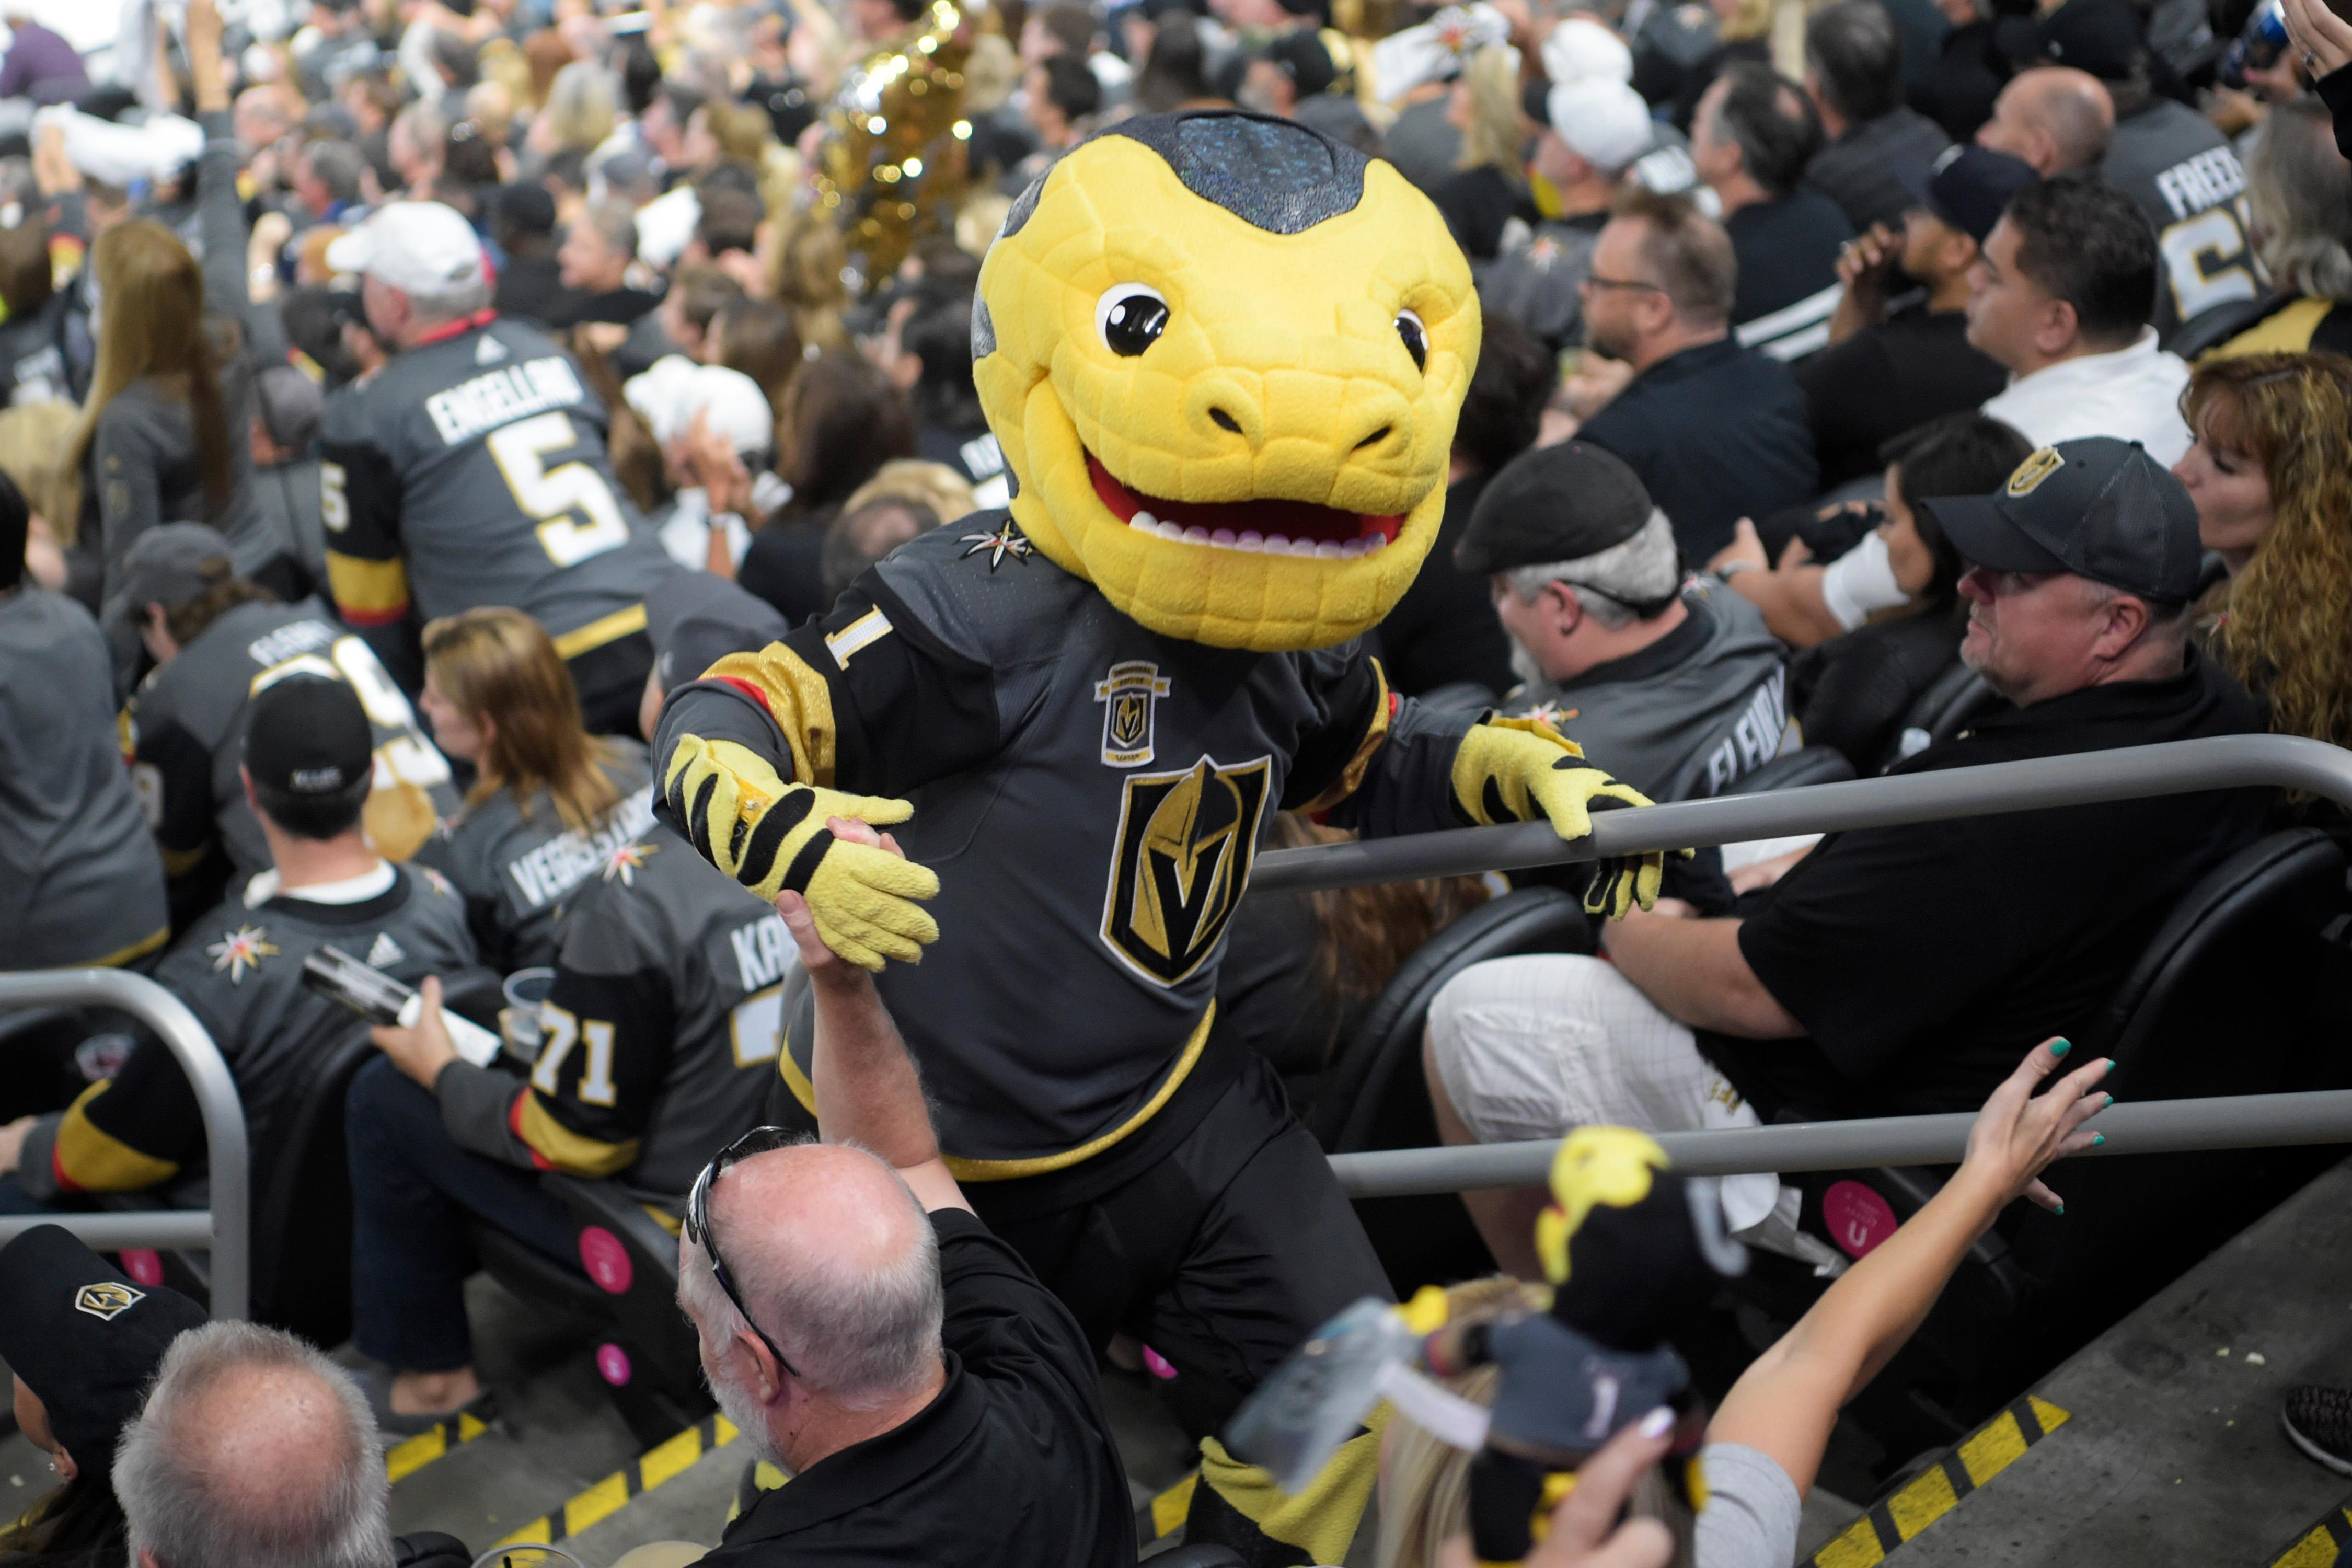 Vegas Golden Knights mascot Chance high fives fans during Game 4 of their NHL hockey Western Conference Final game against the Winnipeg Jets Friday, May 18, 2018, at T-Mobile Arena. The Golden Knights won 3-2. CREDIT: Sam Morris/Las Vegas News Bureau